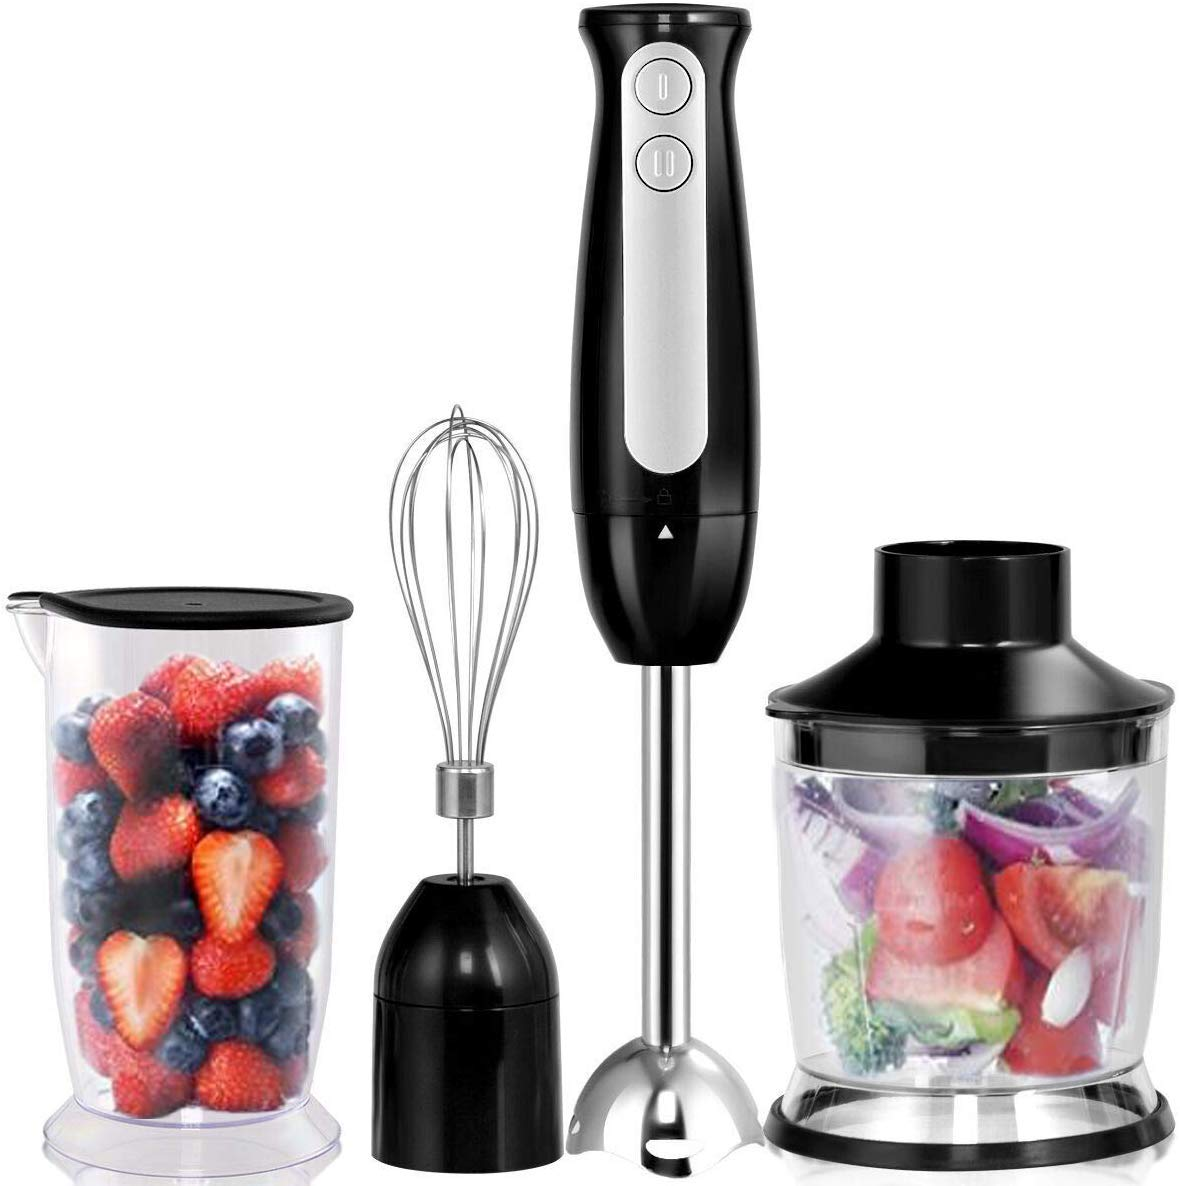 COSTWAY 4-in-1 Hand Blender 600W 2-Speed Electric Multifunctional Immersion Stick Blender w/500ml Food Chopper, Egg Whisk, and 700ml Beaker (Black) by COSTWAY